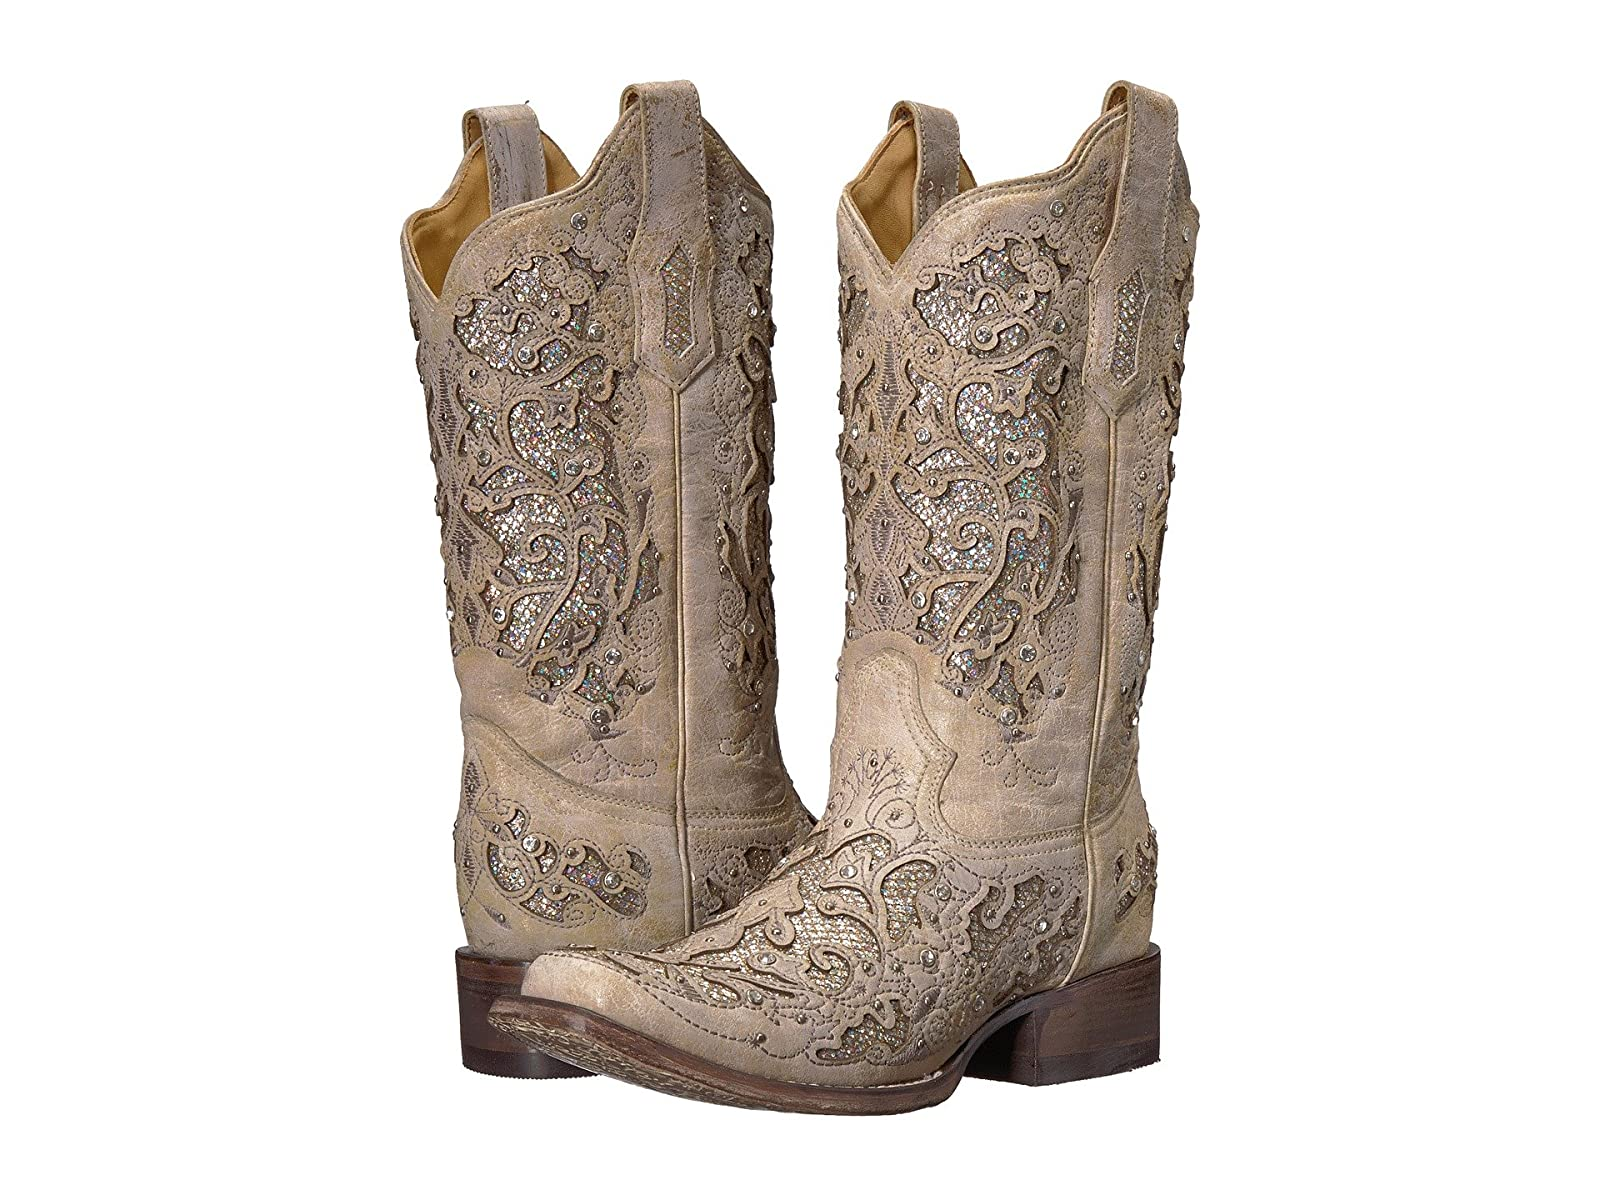 Corral Boots A3397Affordable and distinctive shoes